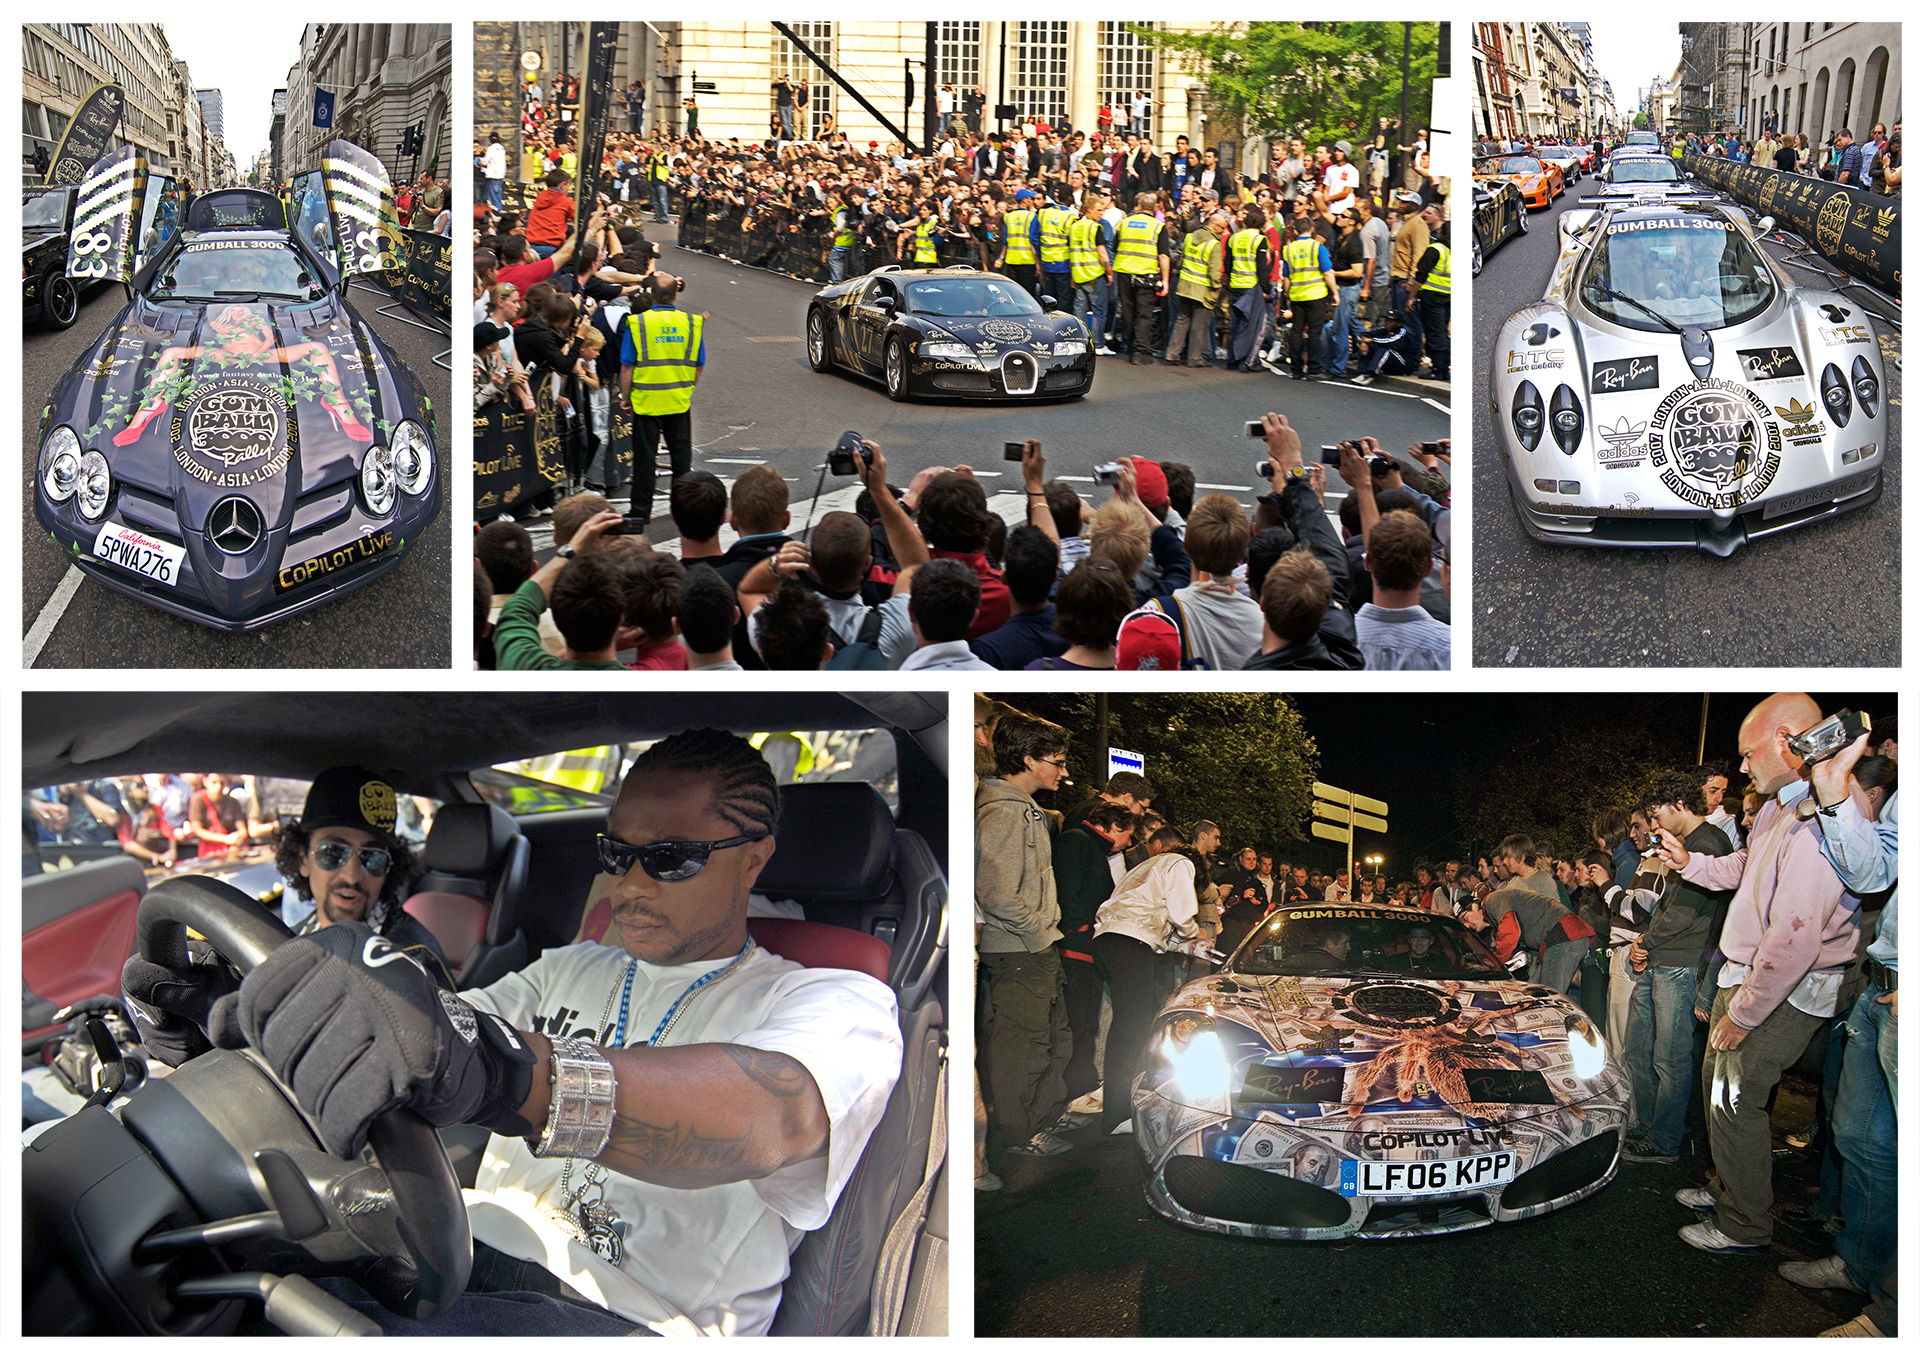 xzibit,gumball 3000,adidas,streetrace,project a.christopher baer,bochum,tourmanagement,logistik,promotion,shoes,tourbegleitung,agentur,2007